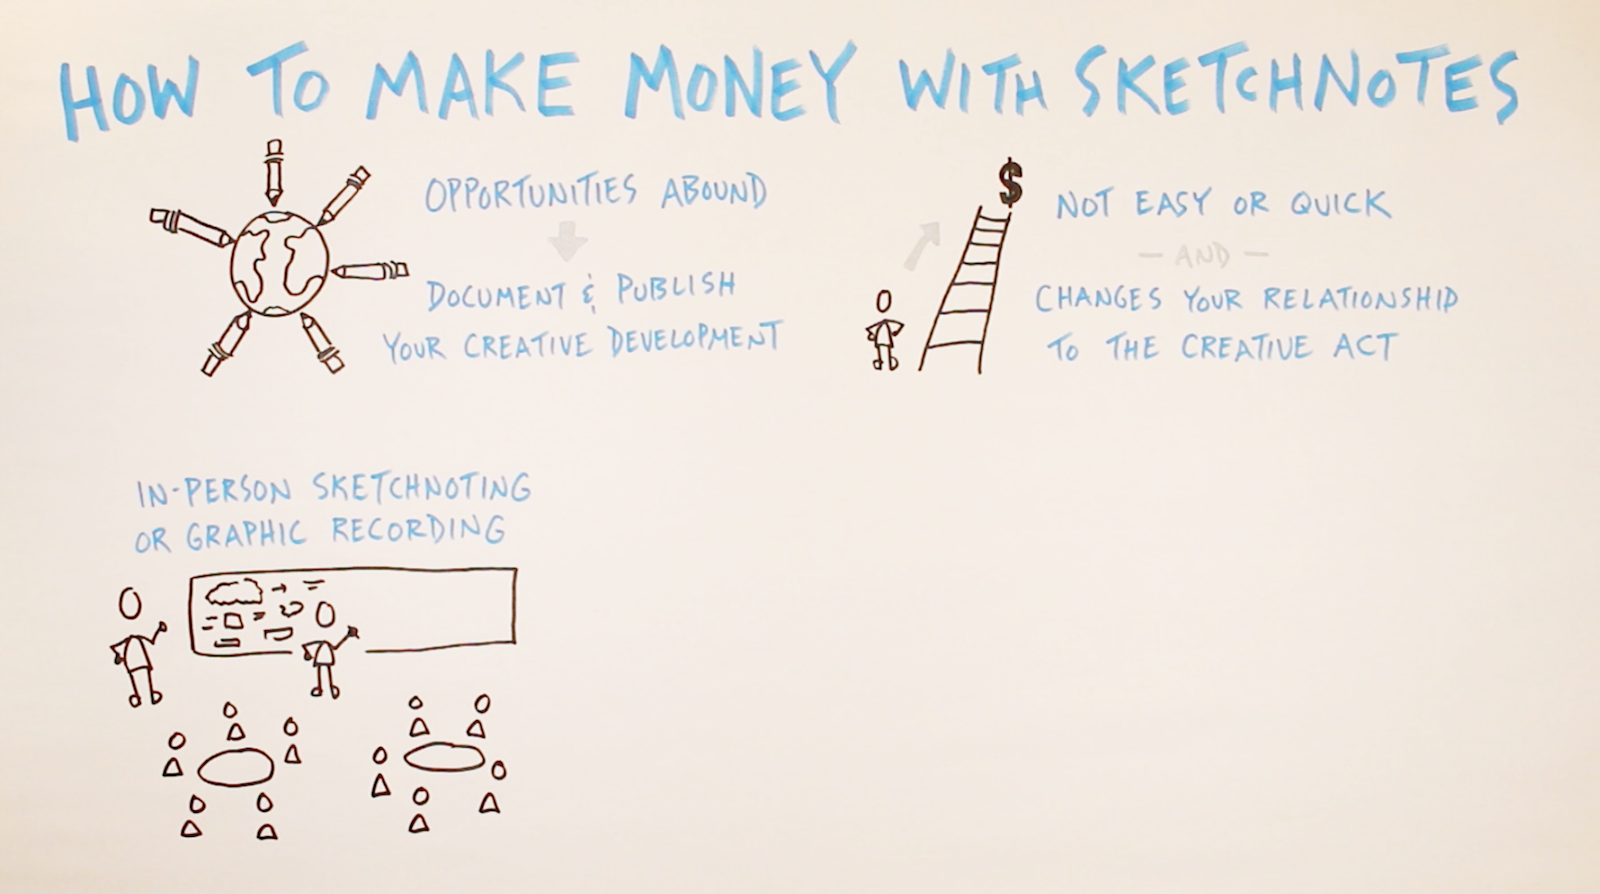 Make money with sketchnotes: graphic recording